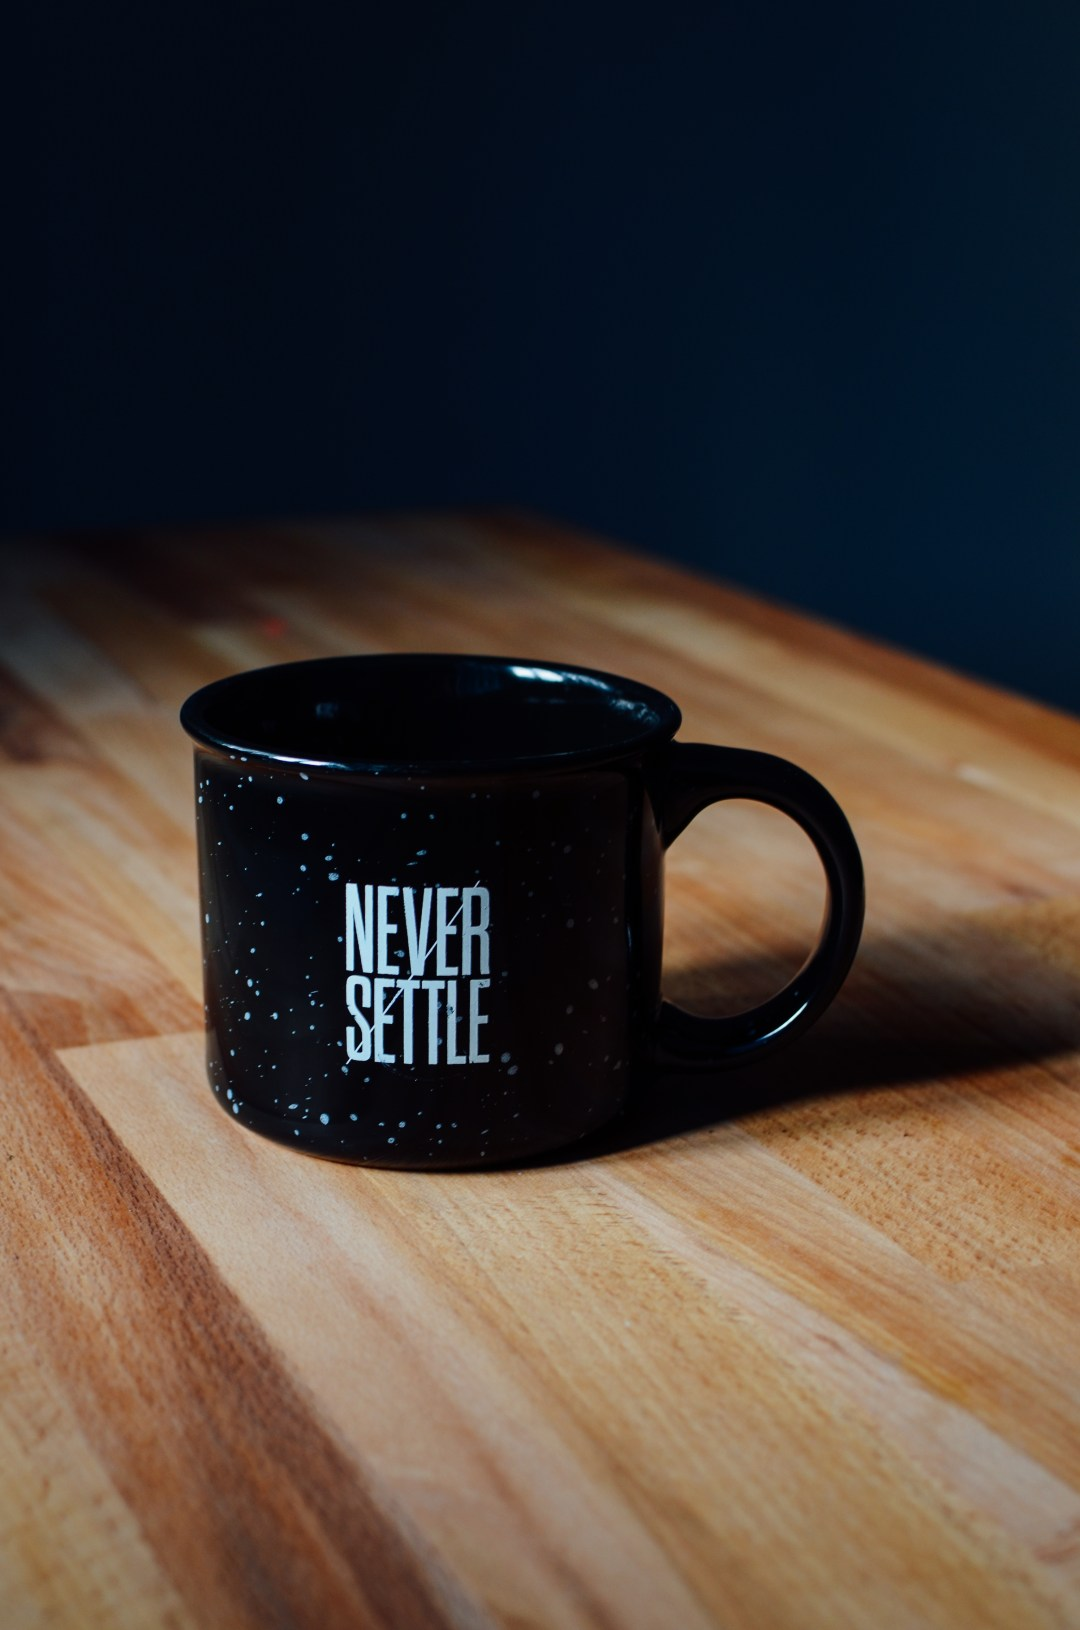 Life Quotes Wallpaper Images Never Settle Mug Photo By Ryan Riggins Ryan Riggins On